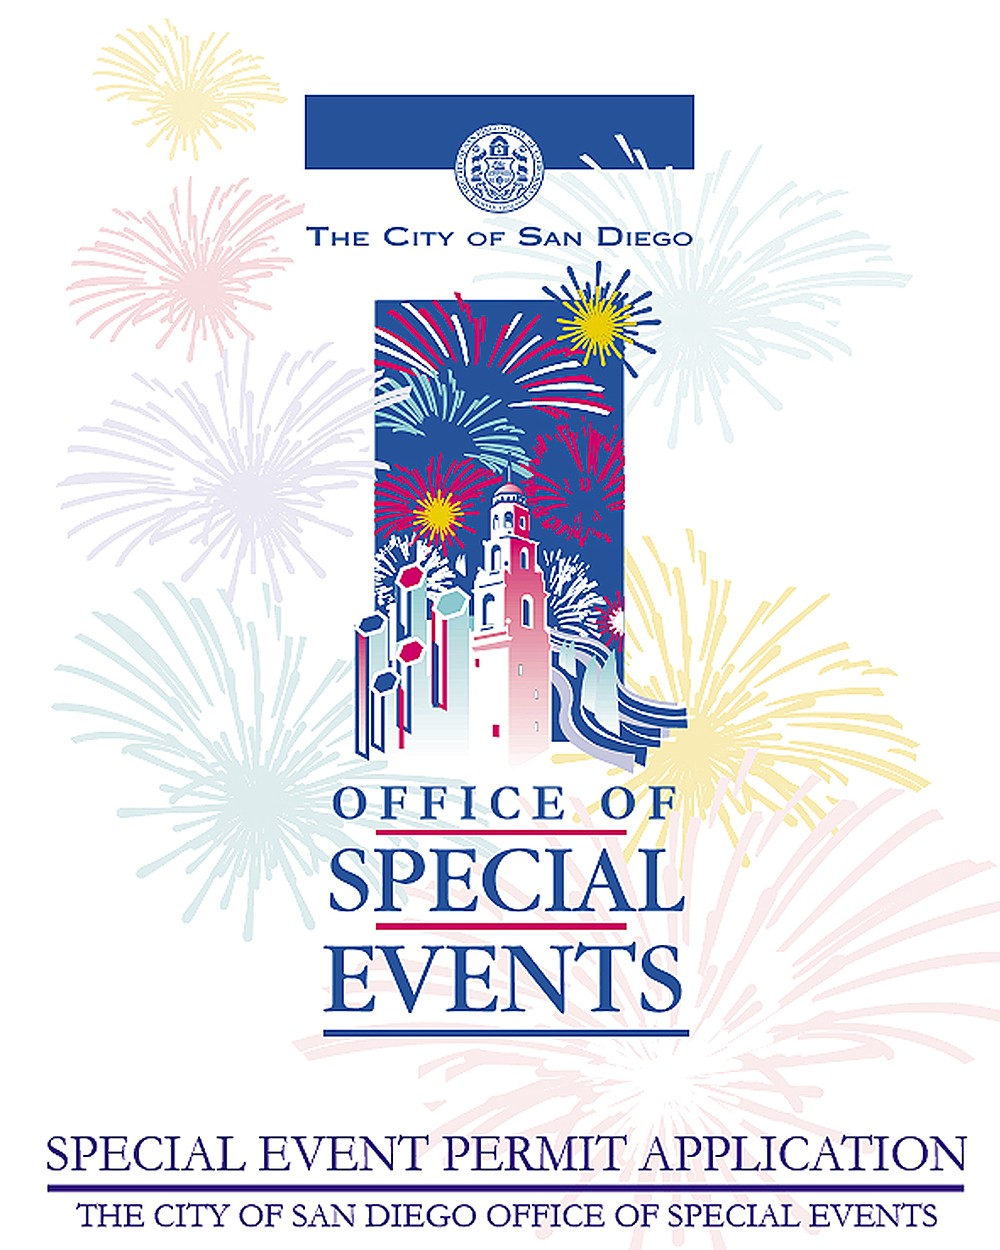 The city's 81 page guide book on special events doesn't mention decibels or noise buffers.